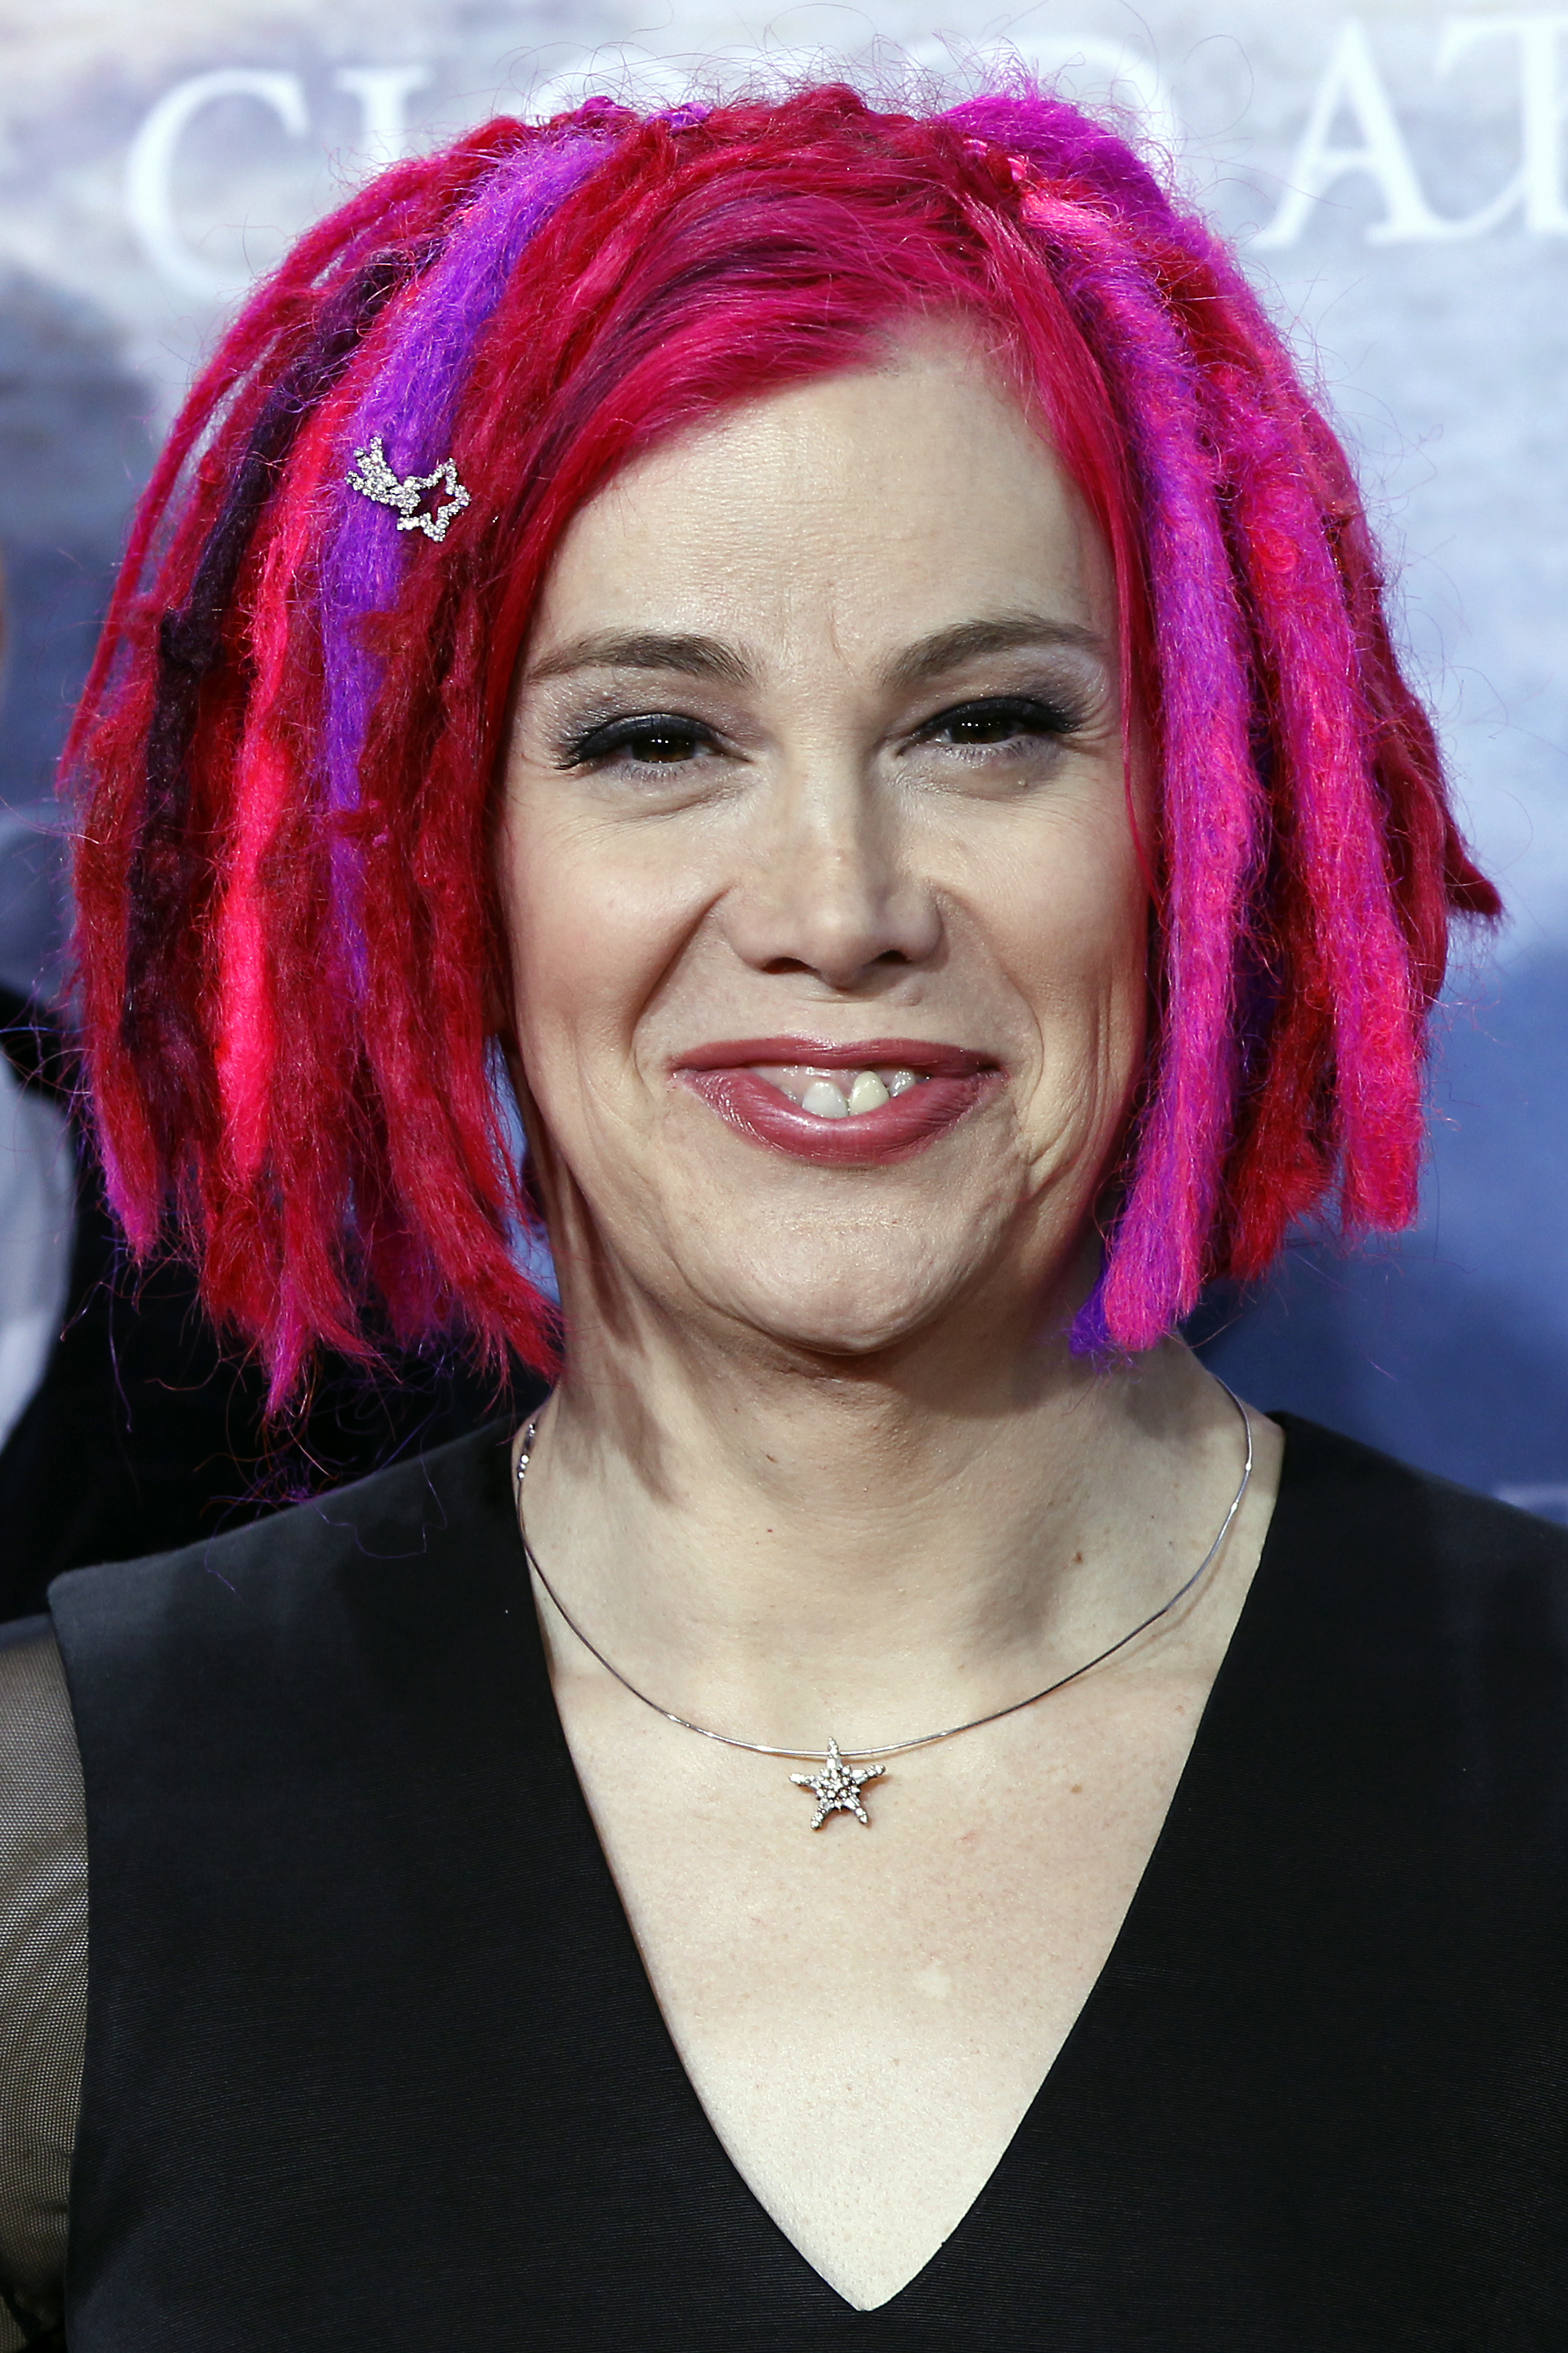 With her brother, Andy, Lana Wachowski  has co-written, produced and directed Hollywood blockbusters like the Matrix triology, V for Vendetta and Cloud Atlas.